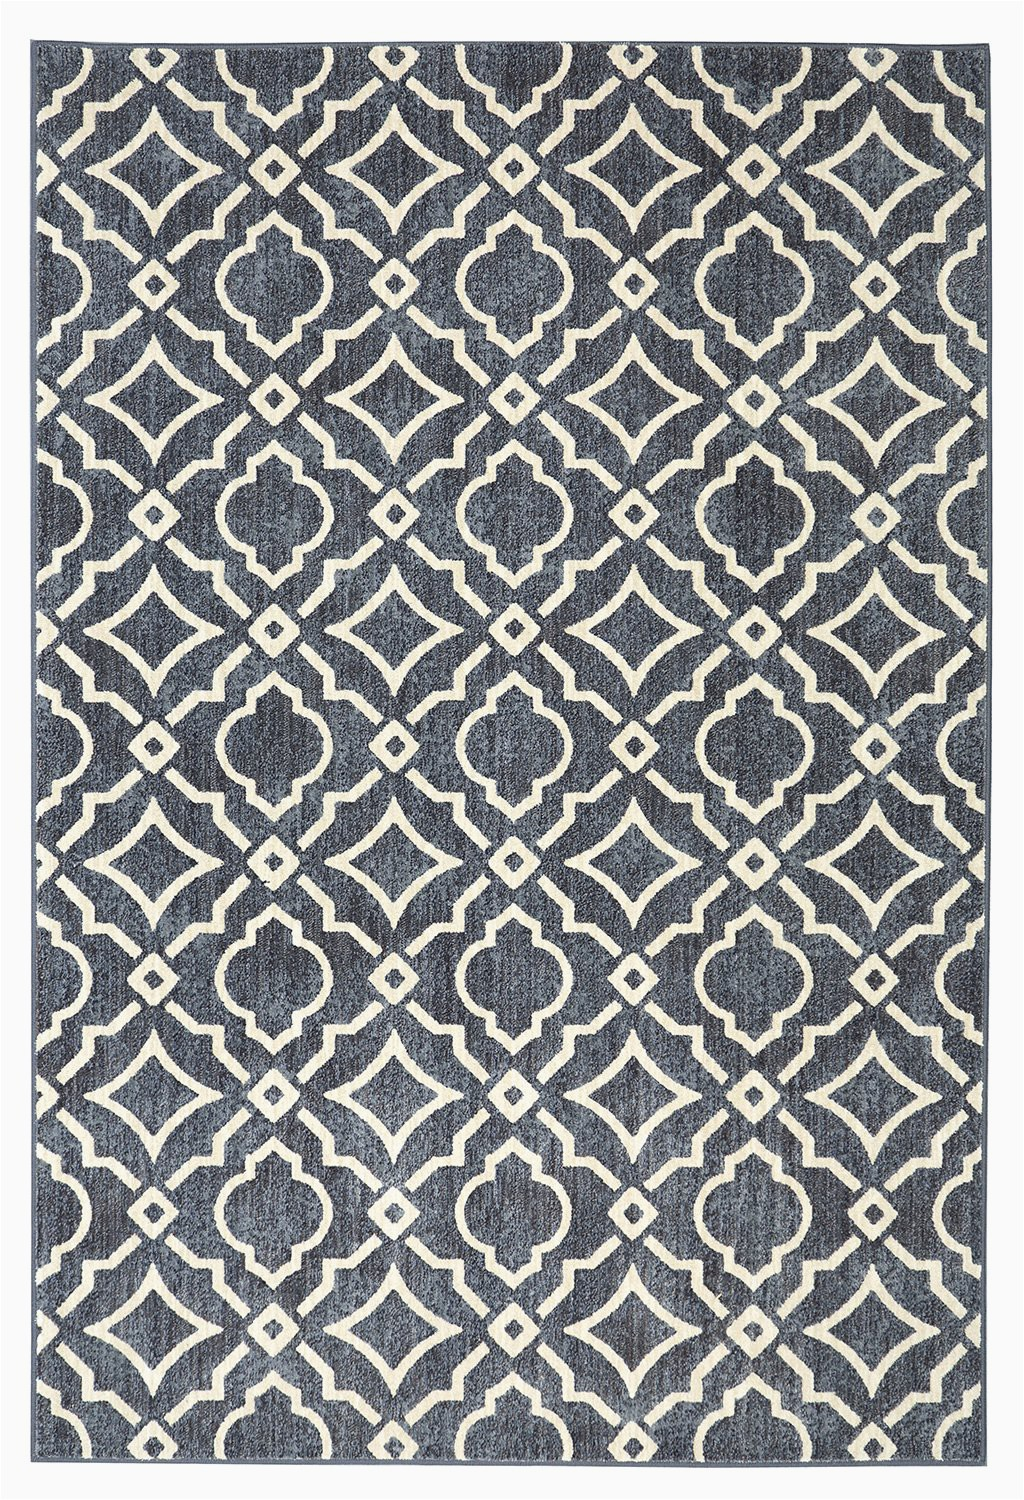 Mohawk Home area Rug 5×7 Mohawk Home Studio Carved Tiles Denim area Rug